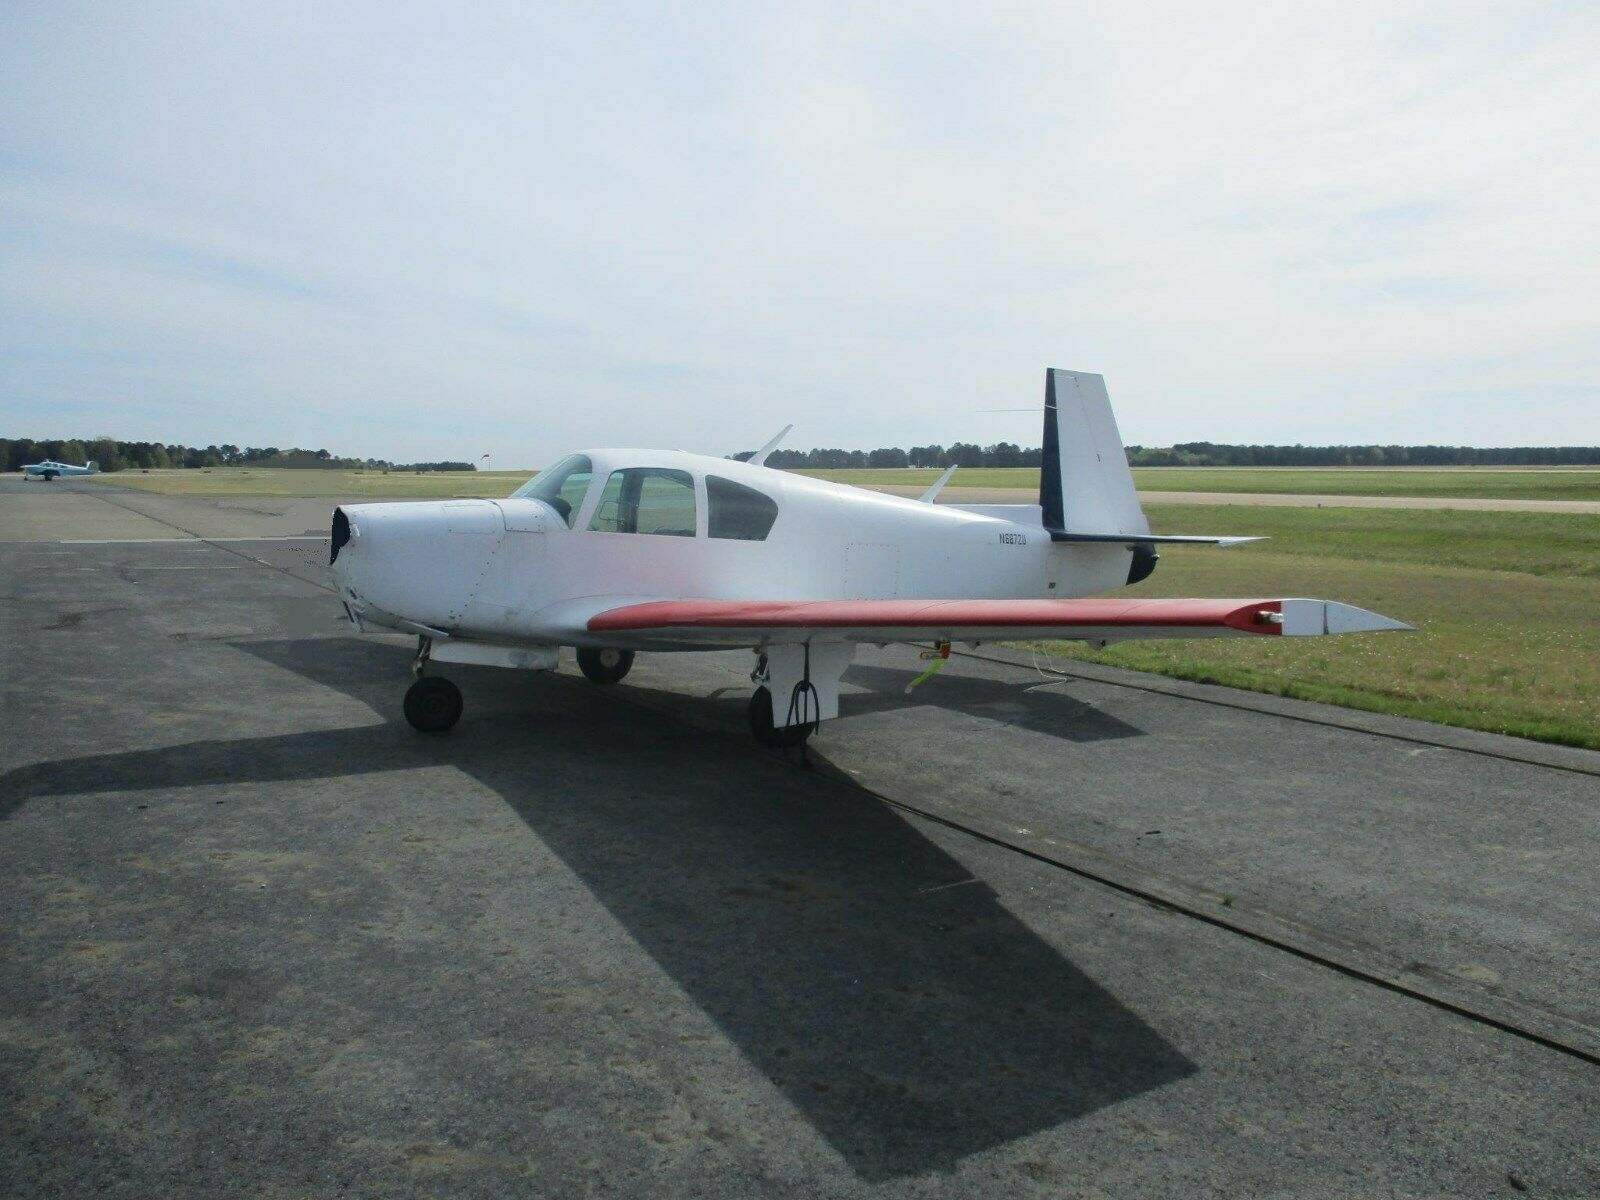 Airframe 1963 Mooney M20C aircraft for sale